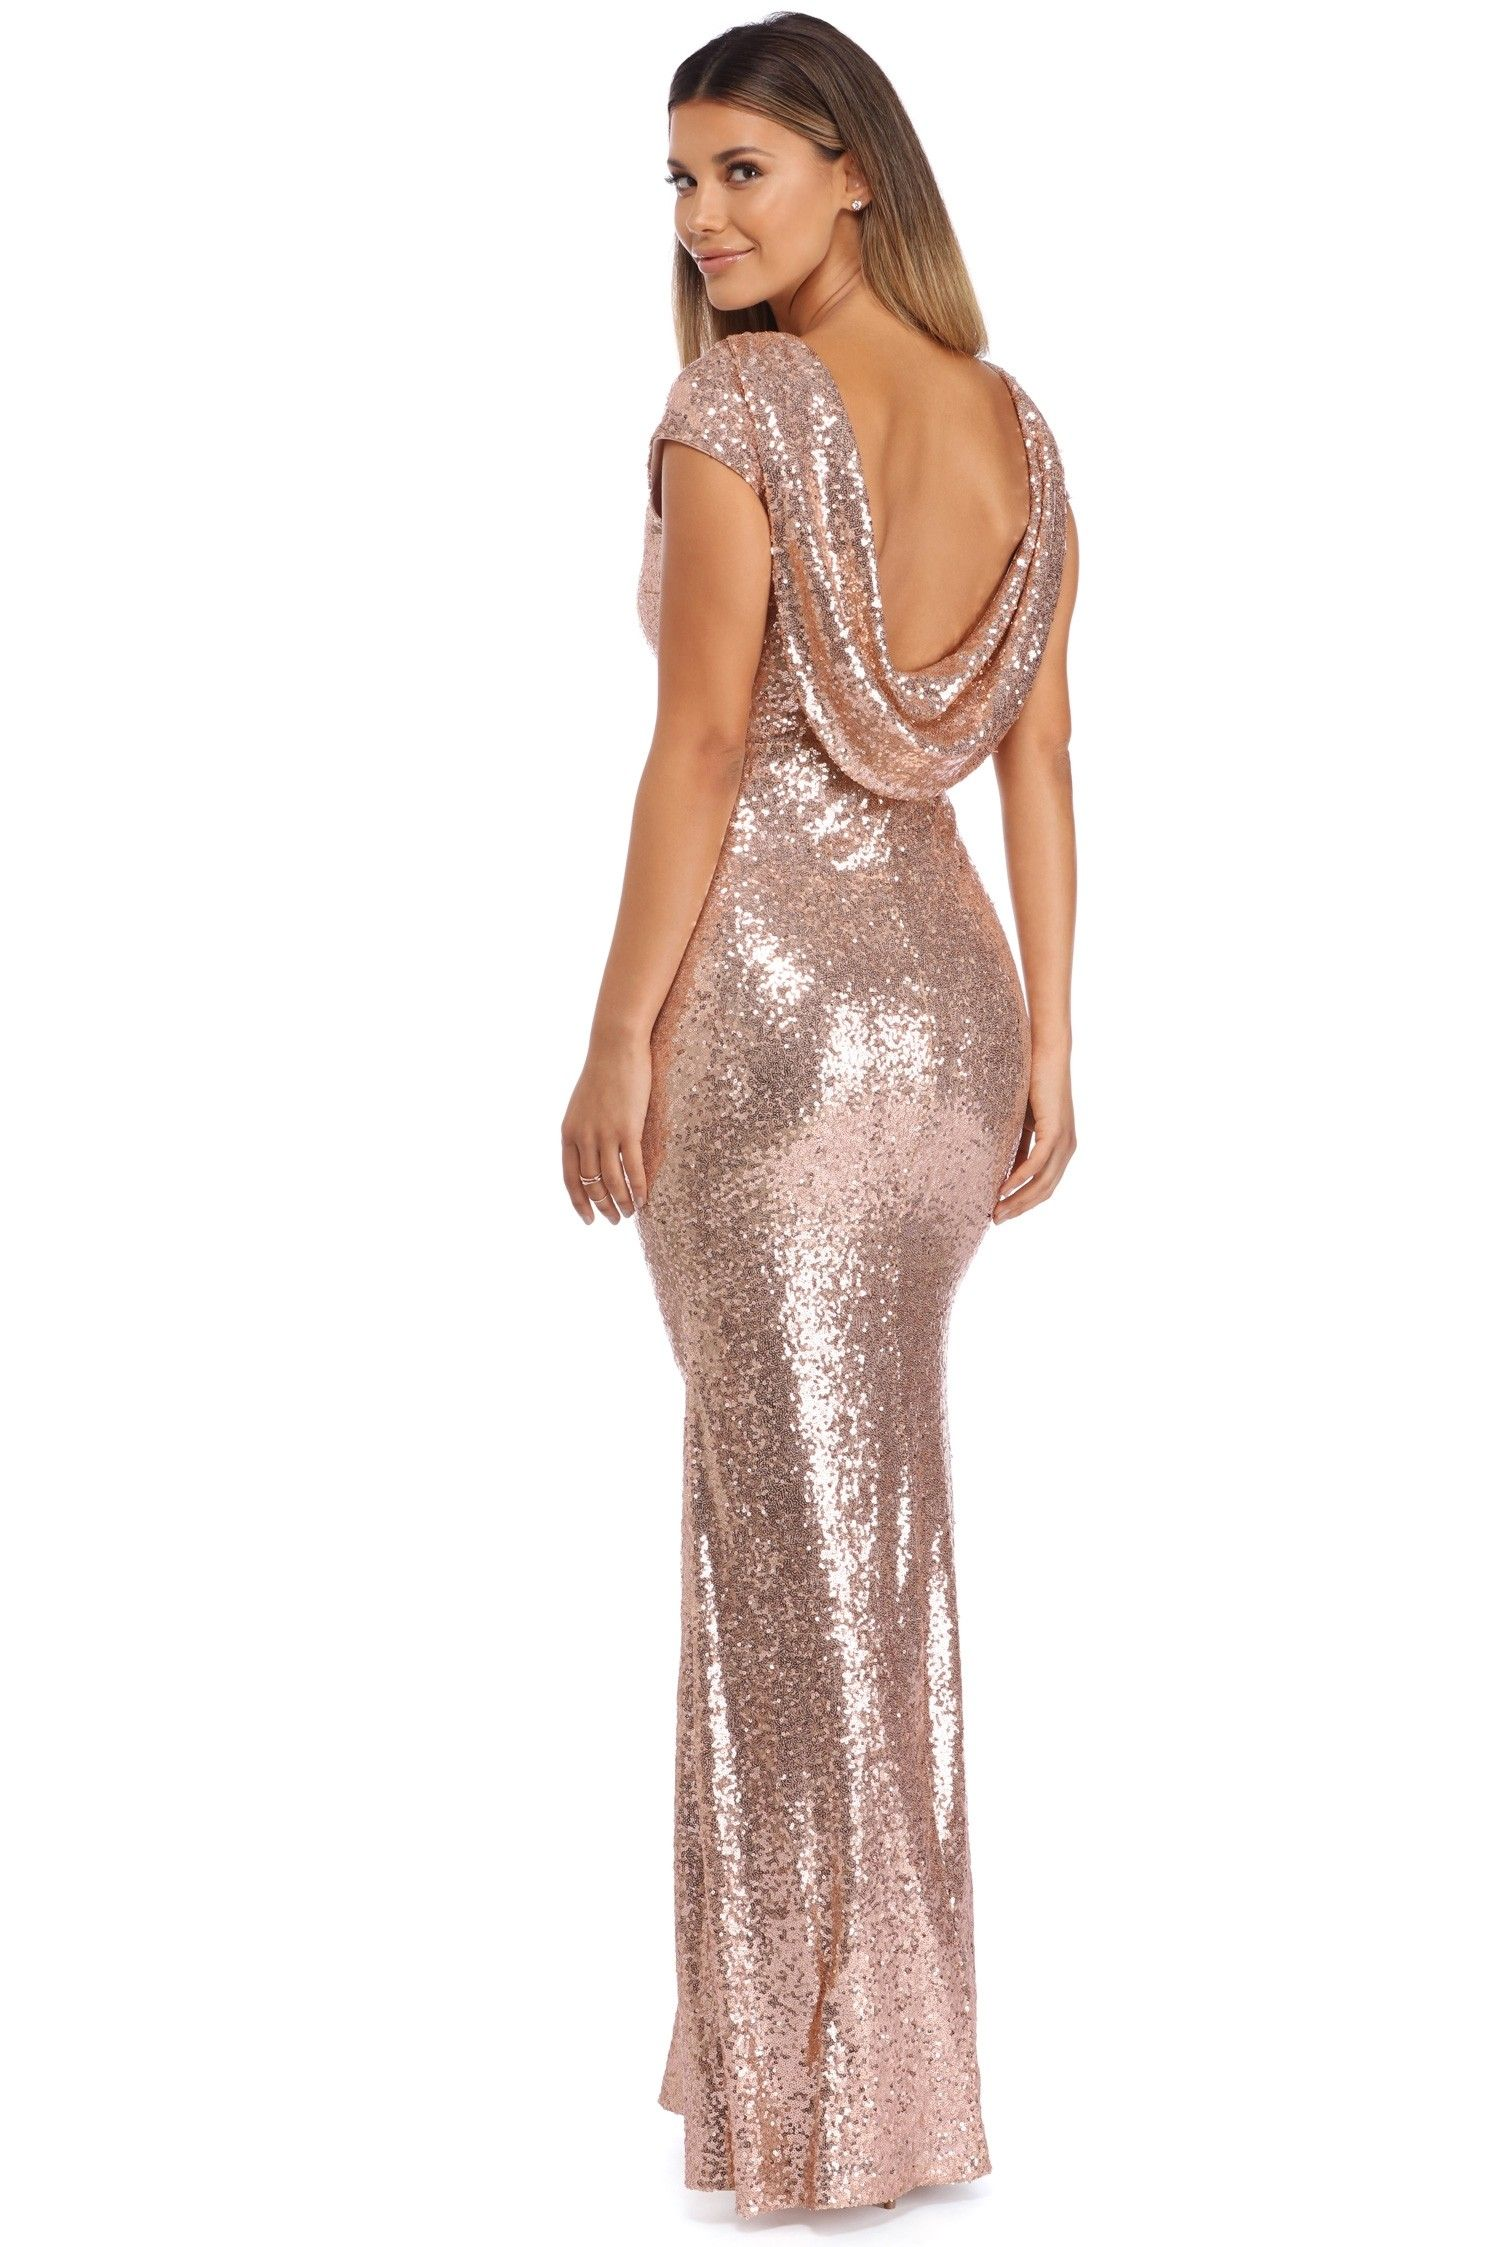 b8422cd6eb Sivan Rose Gold Sequin Dress from Windsor draped back bridesmaids dress  bridesmaid